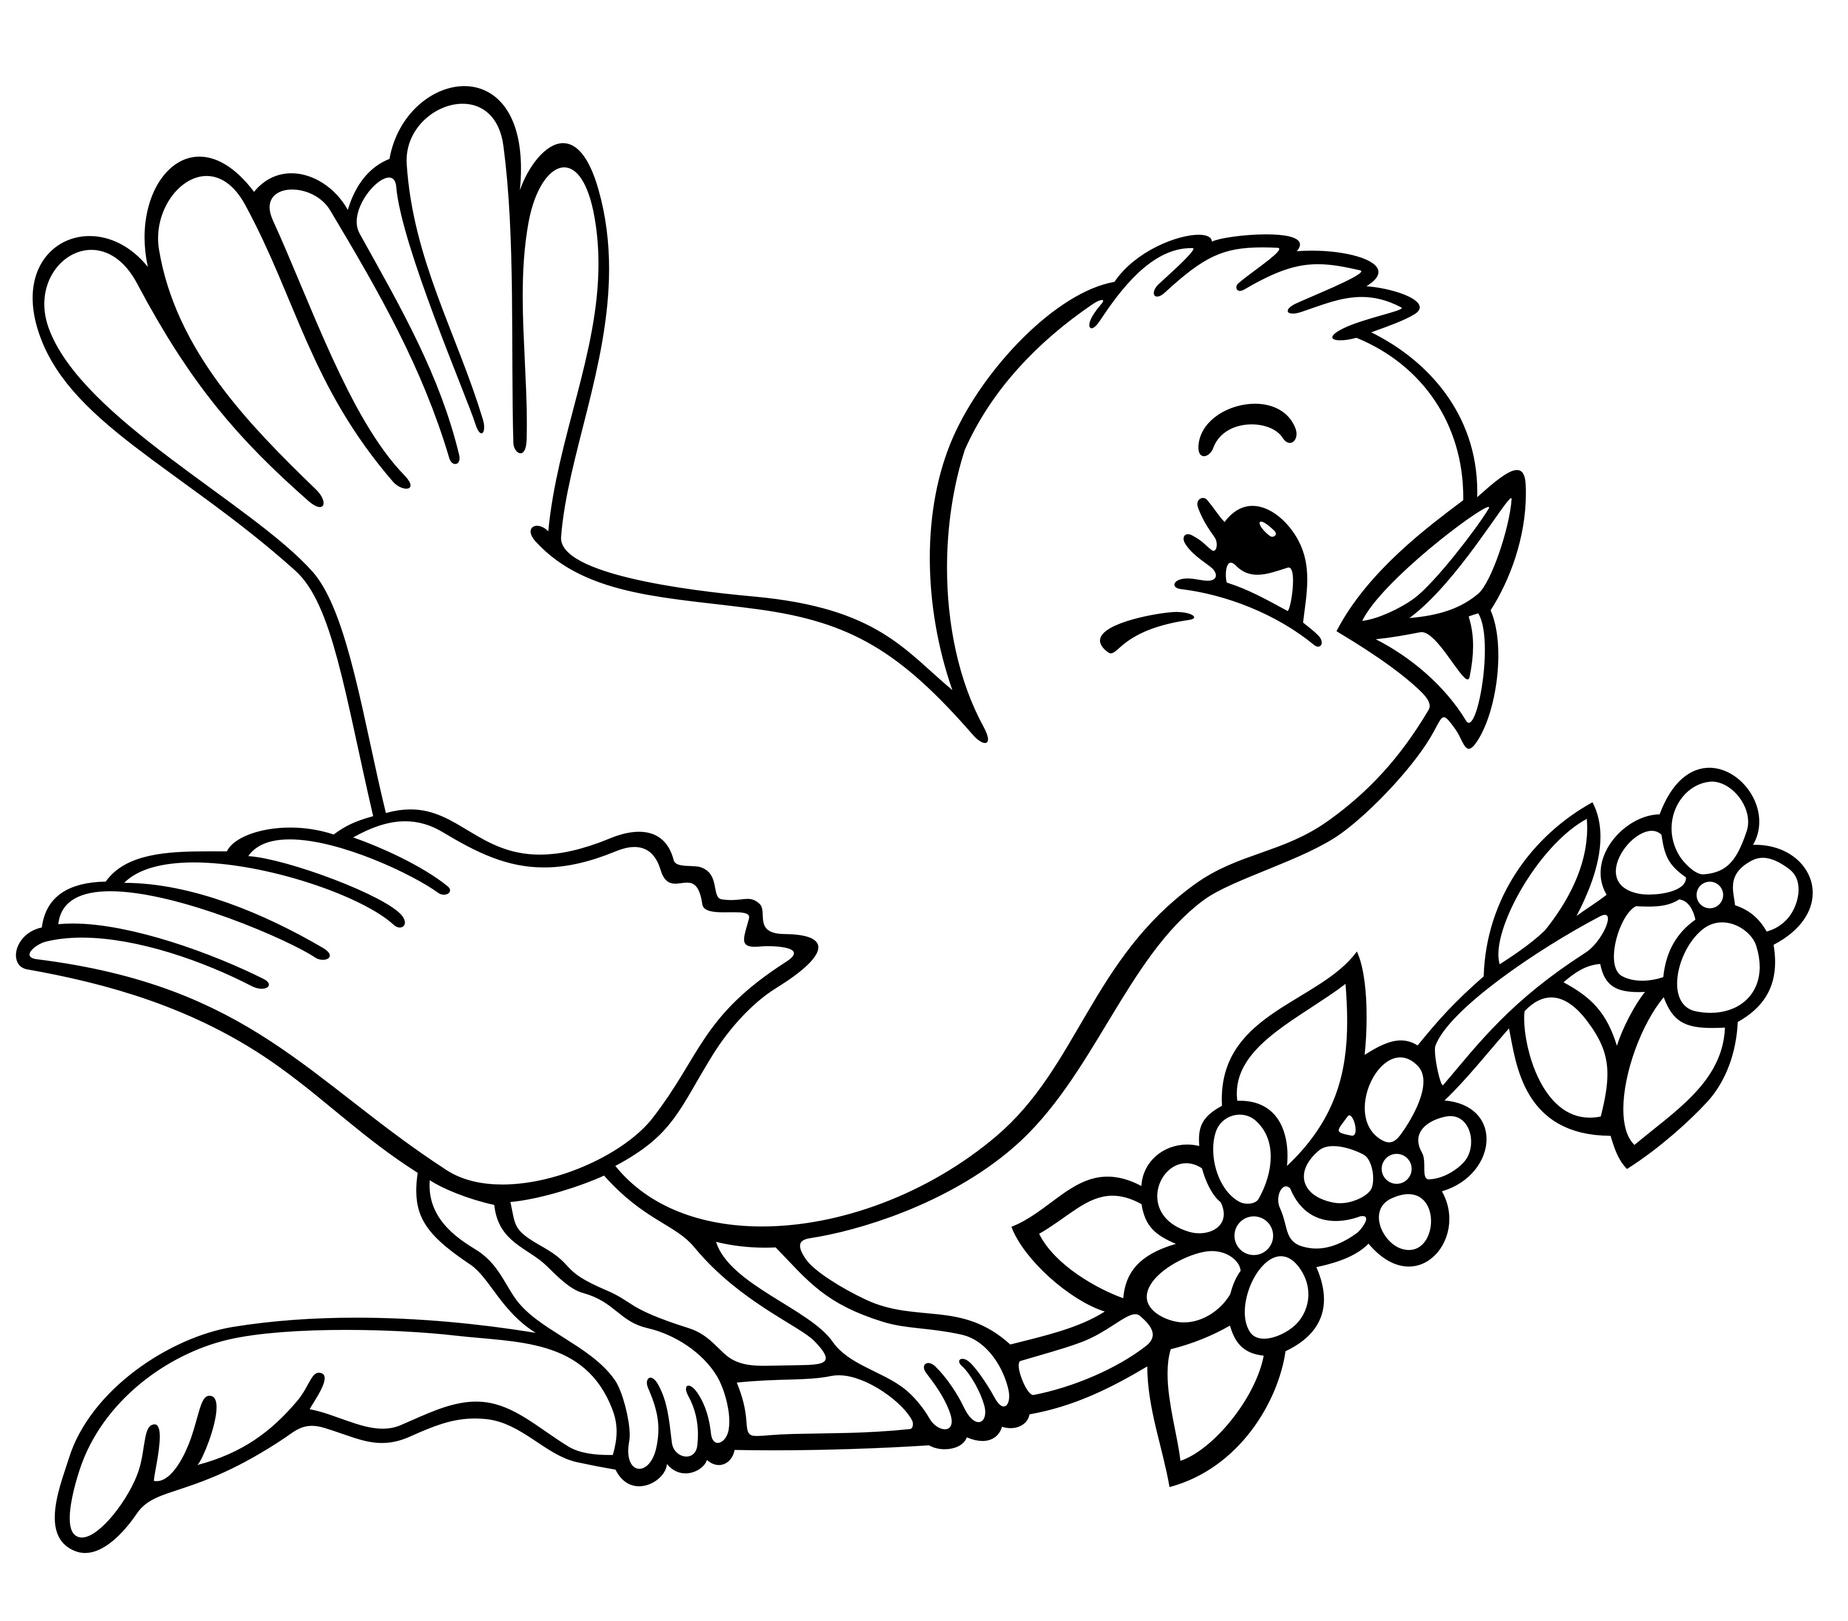 Bird_Coloring_Pages_01